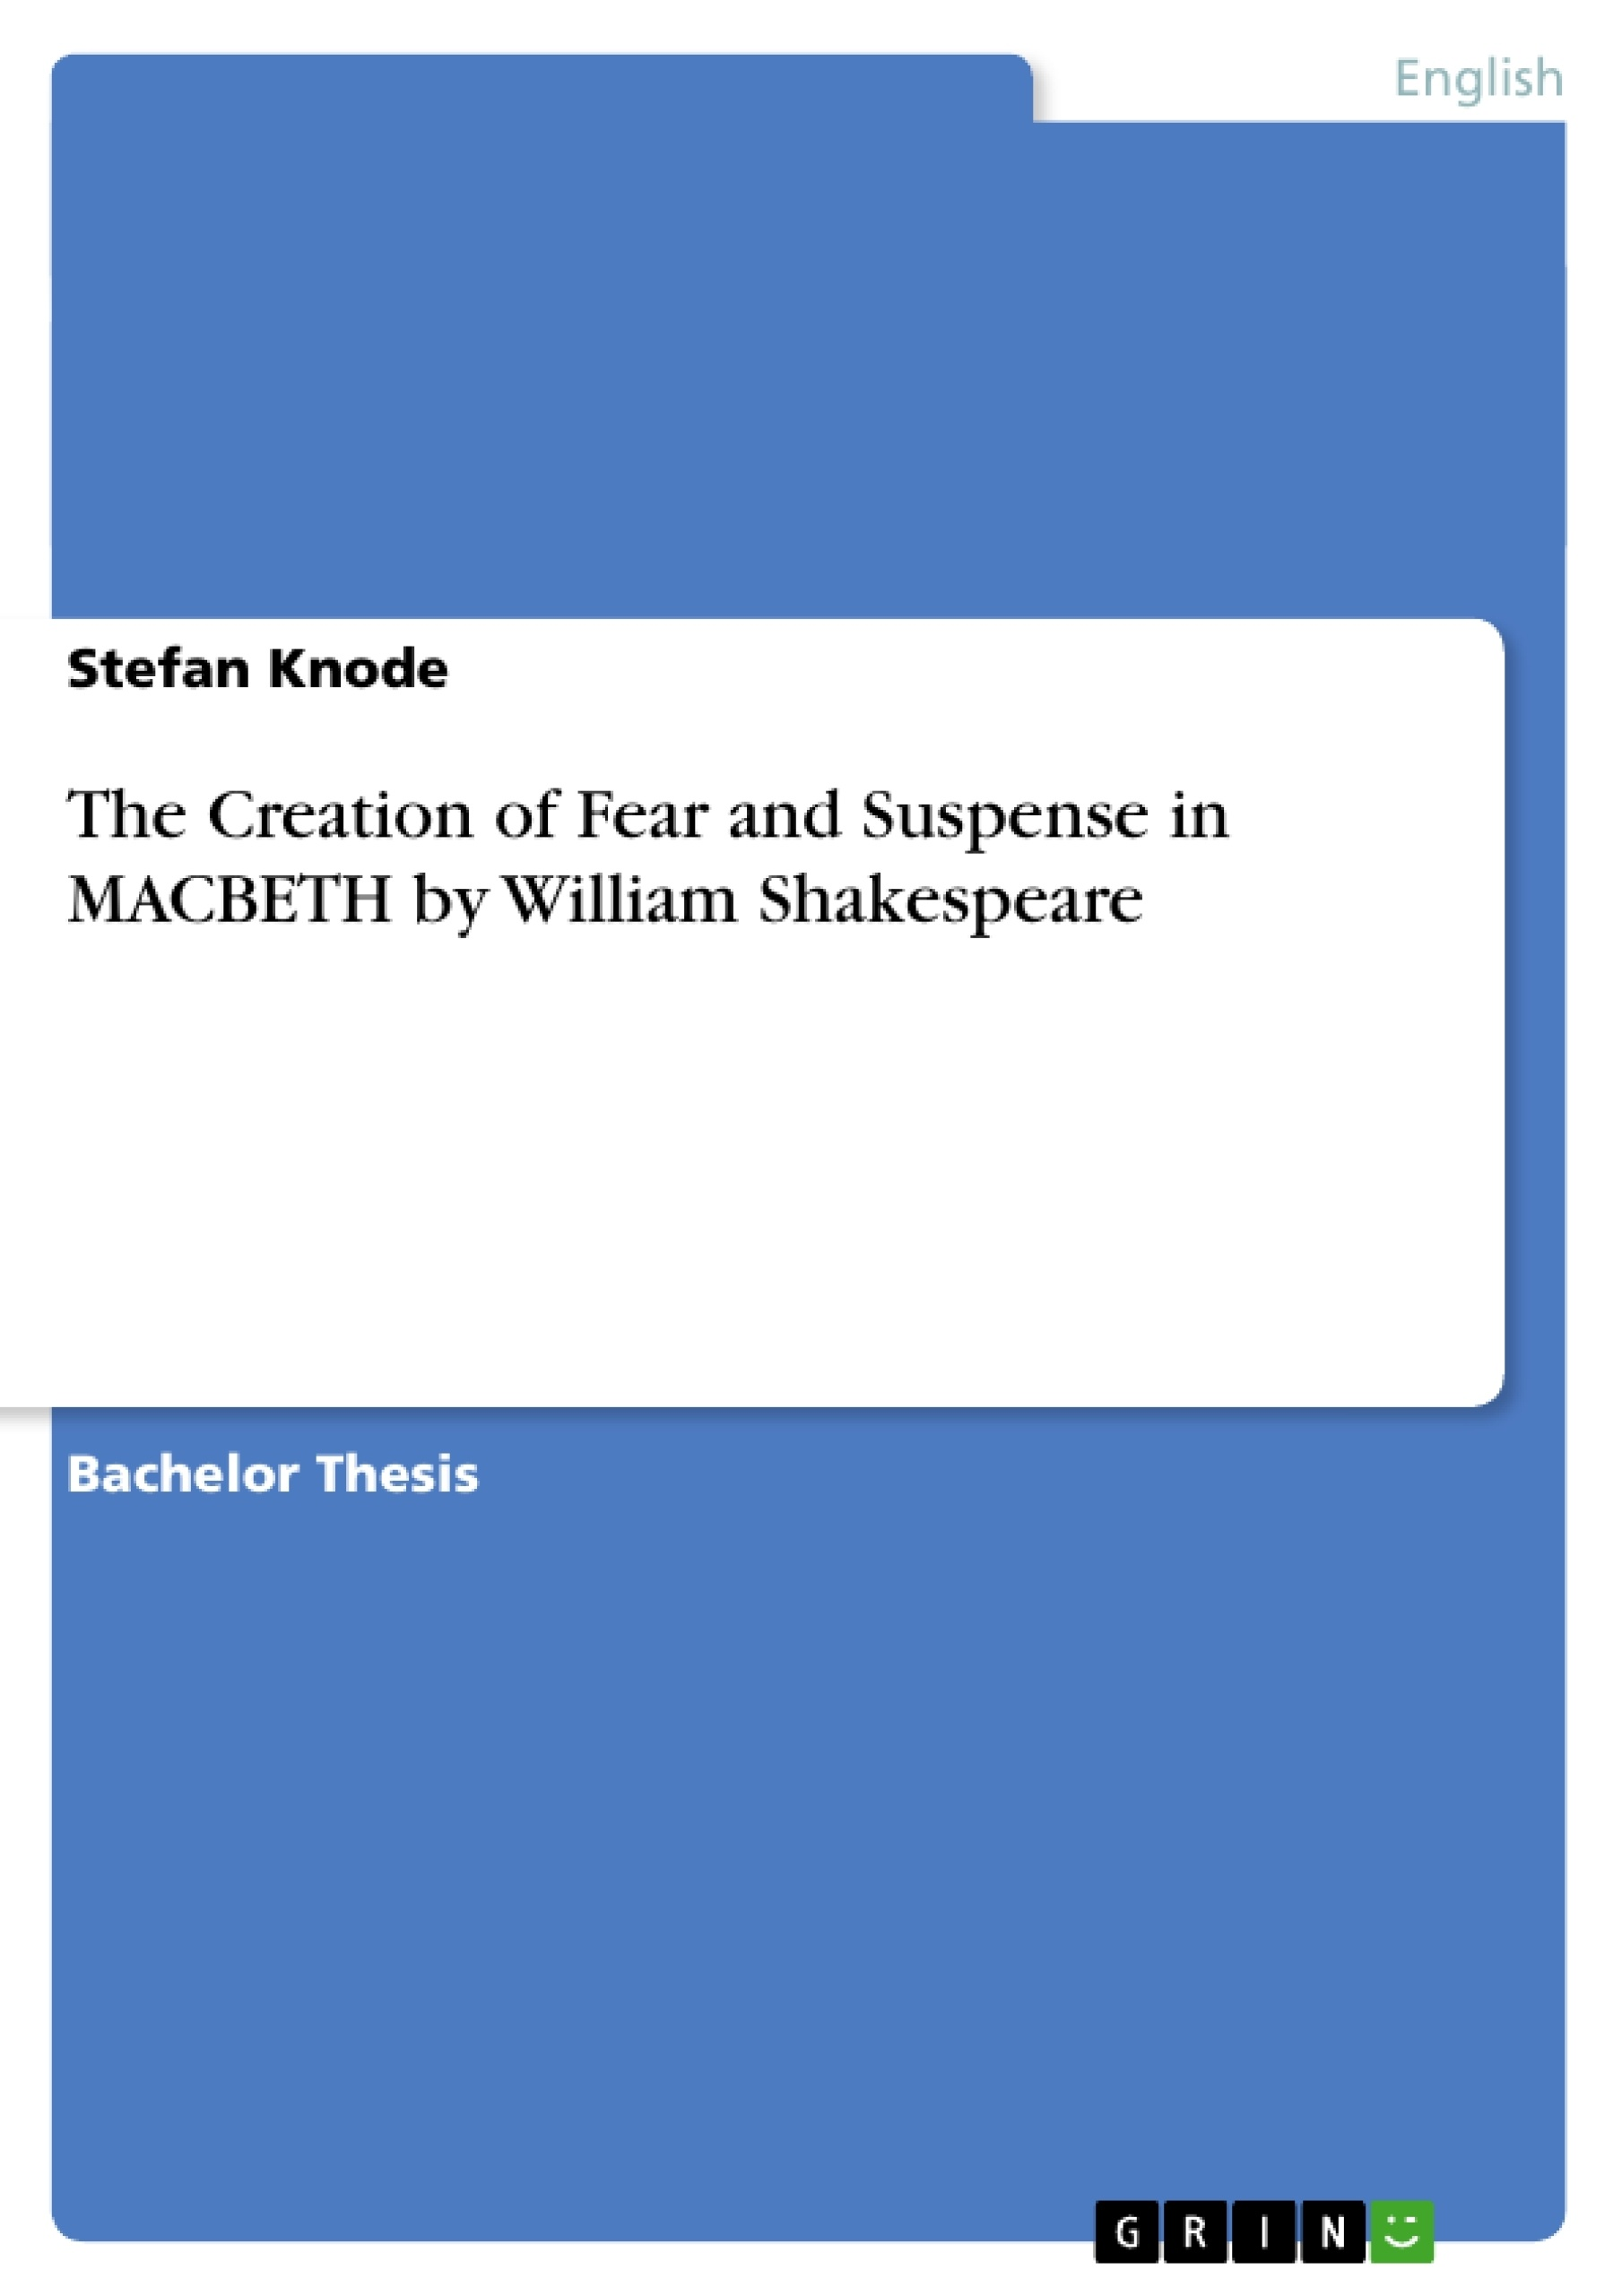 Title: The Creation of Fear and Suspense in MACBETH by William Shakespeare